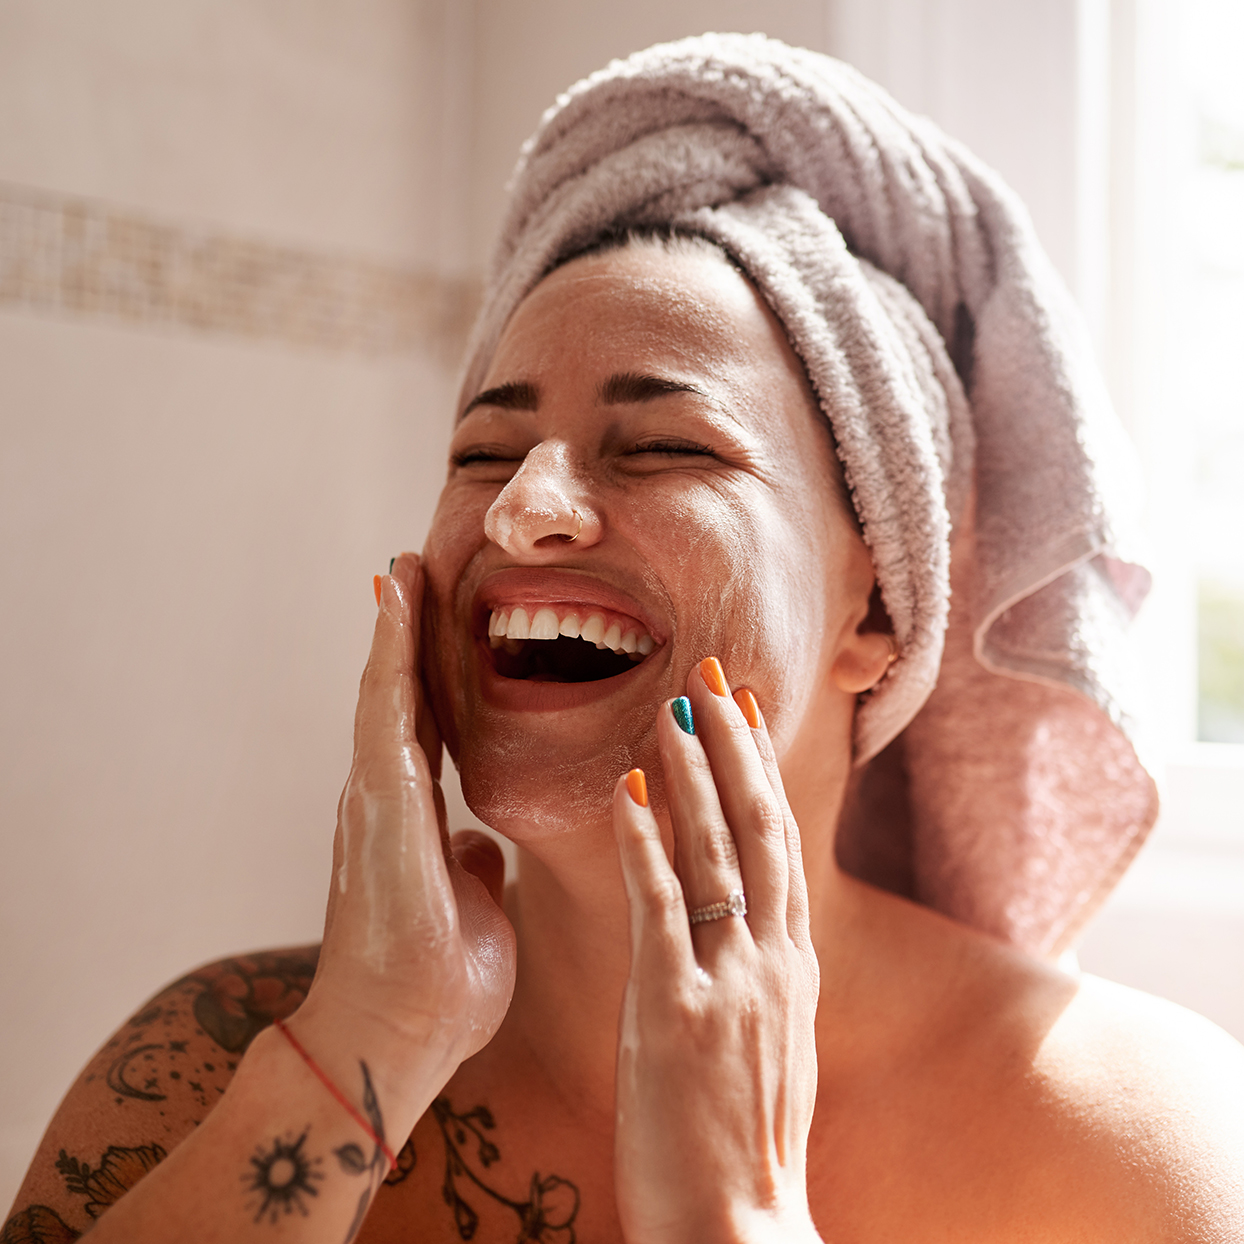 Clean beauty meets clinical skin care